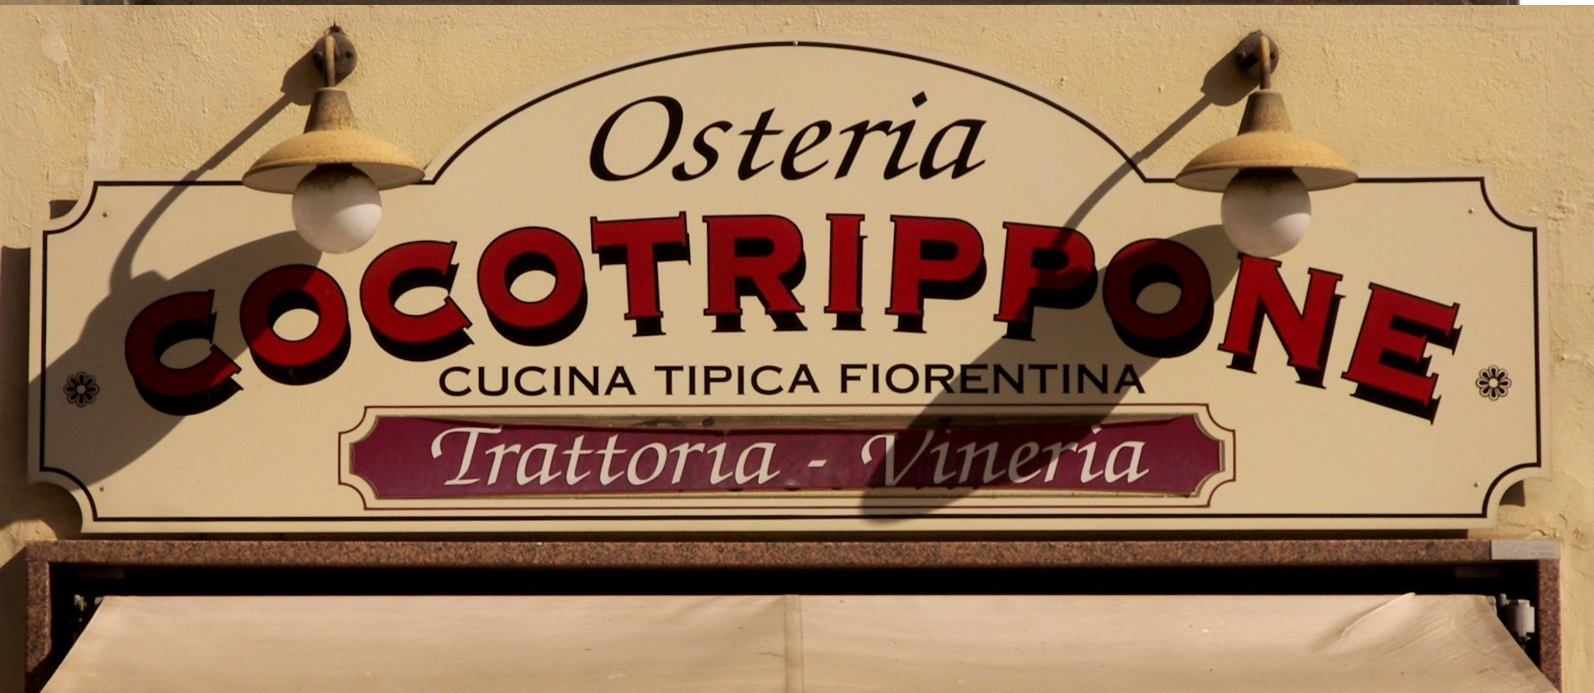 Osteria CocoTrippone